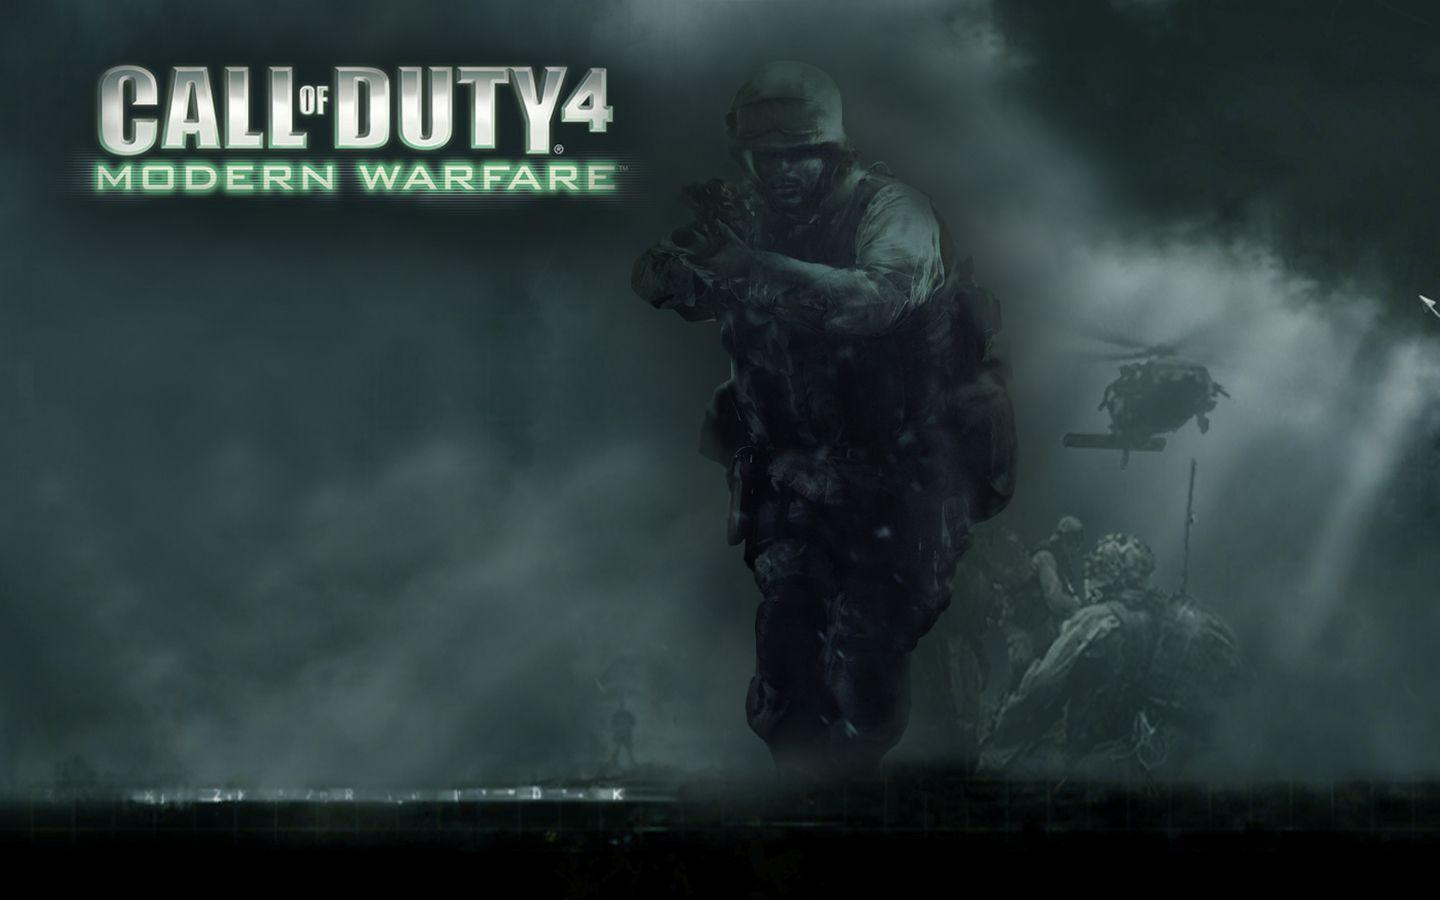 call of duty 4 wallpapers wallpaper cave